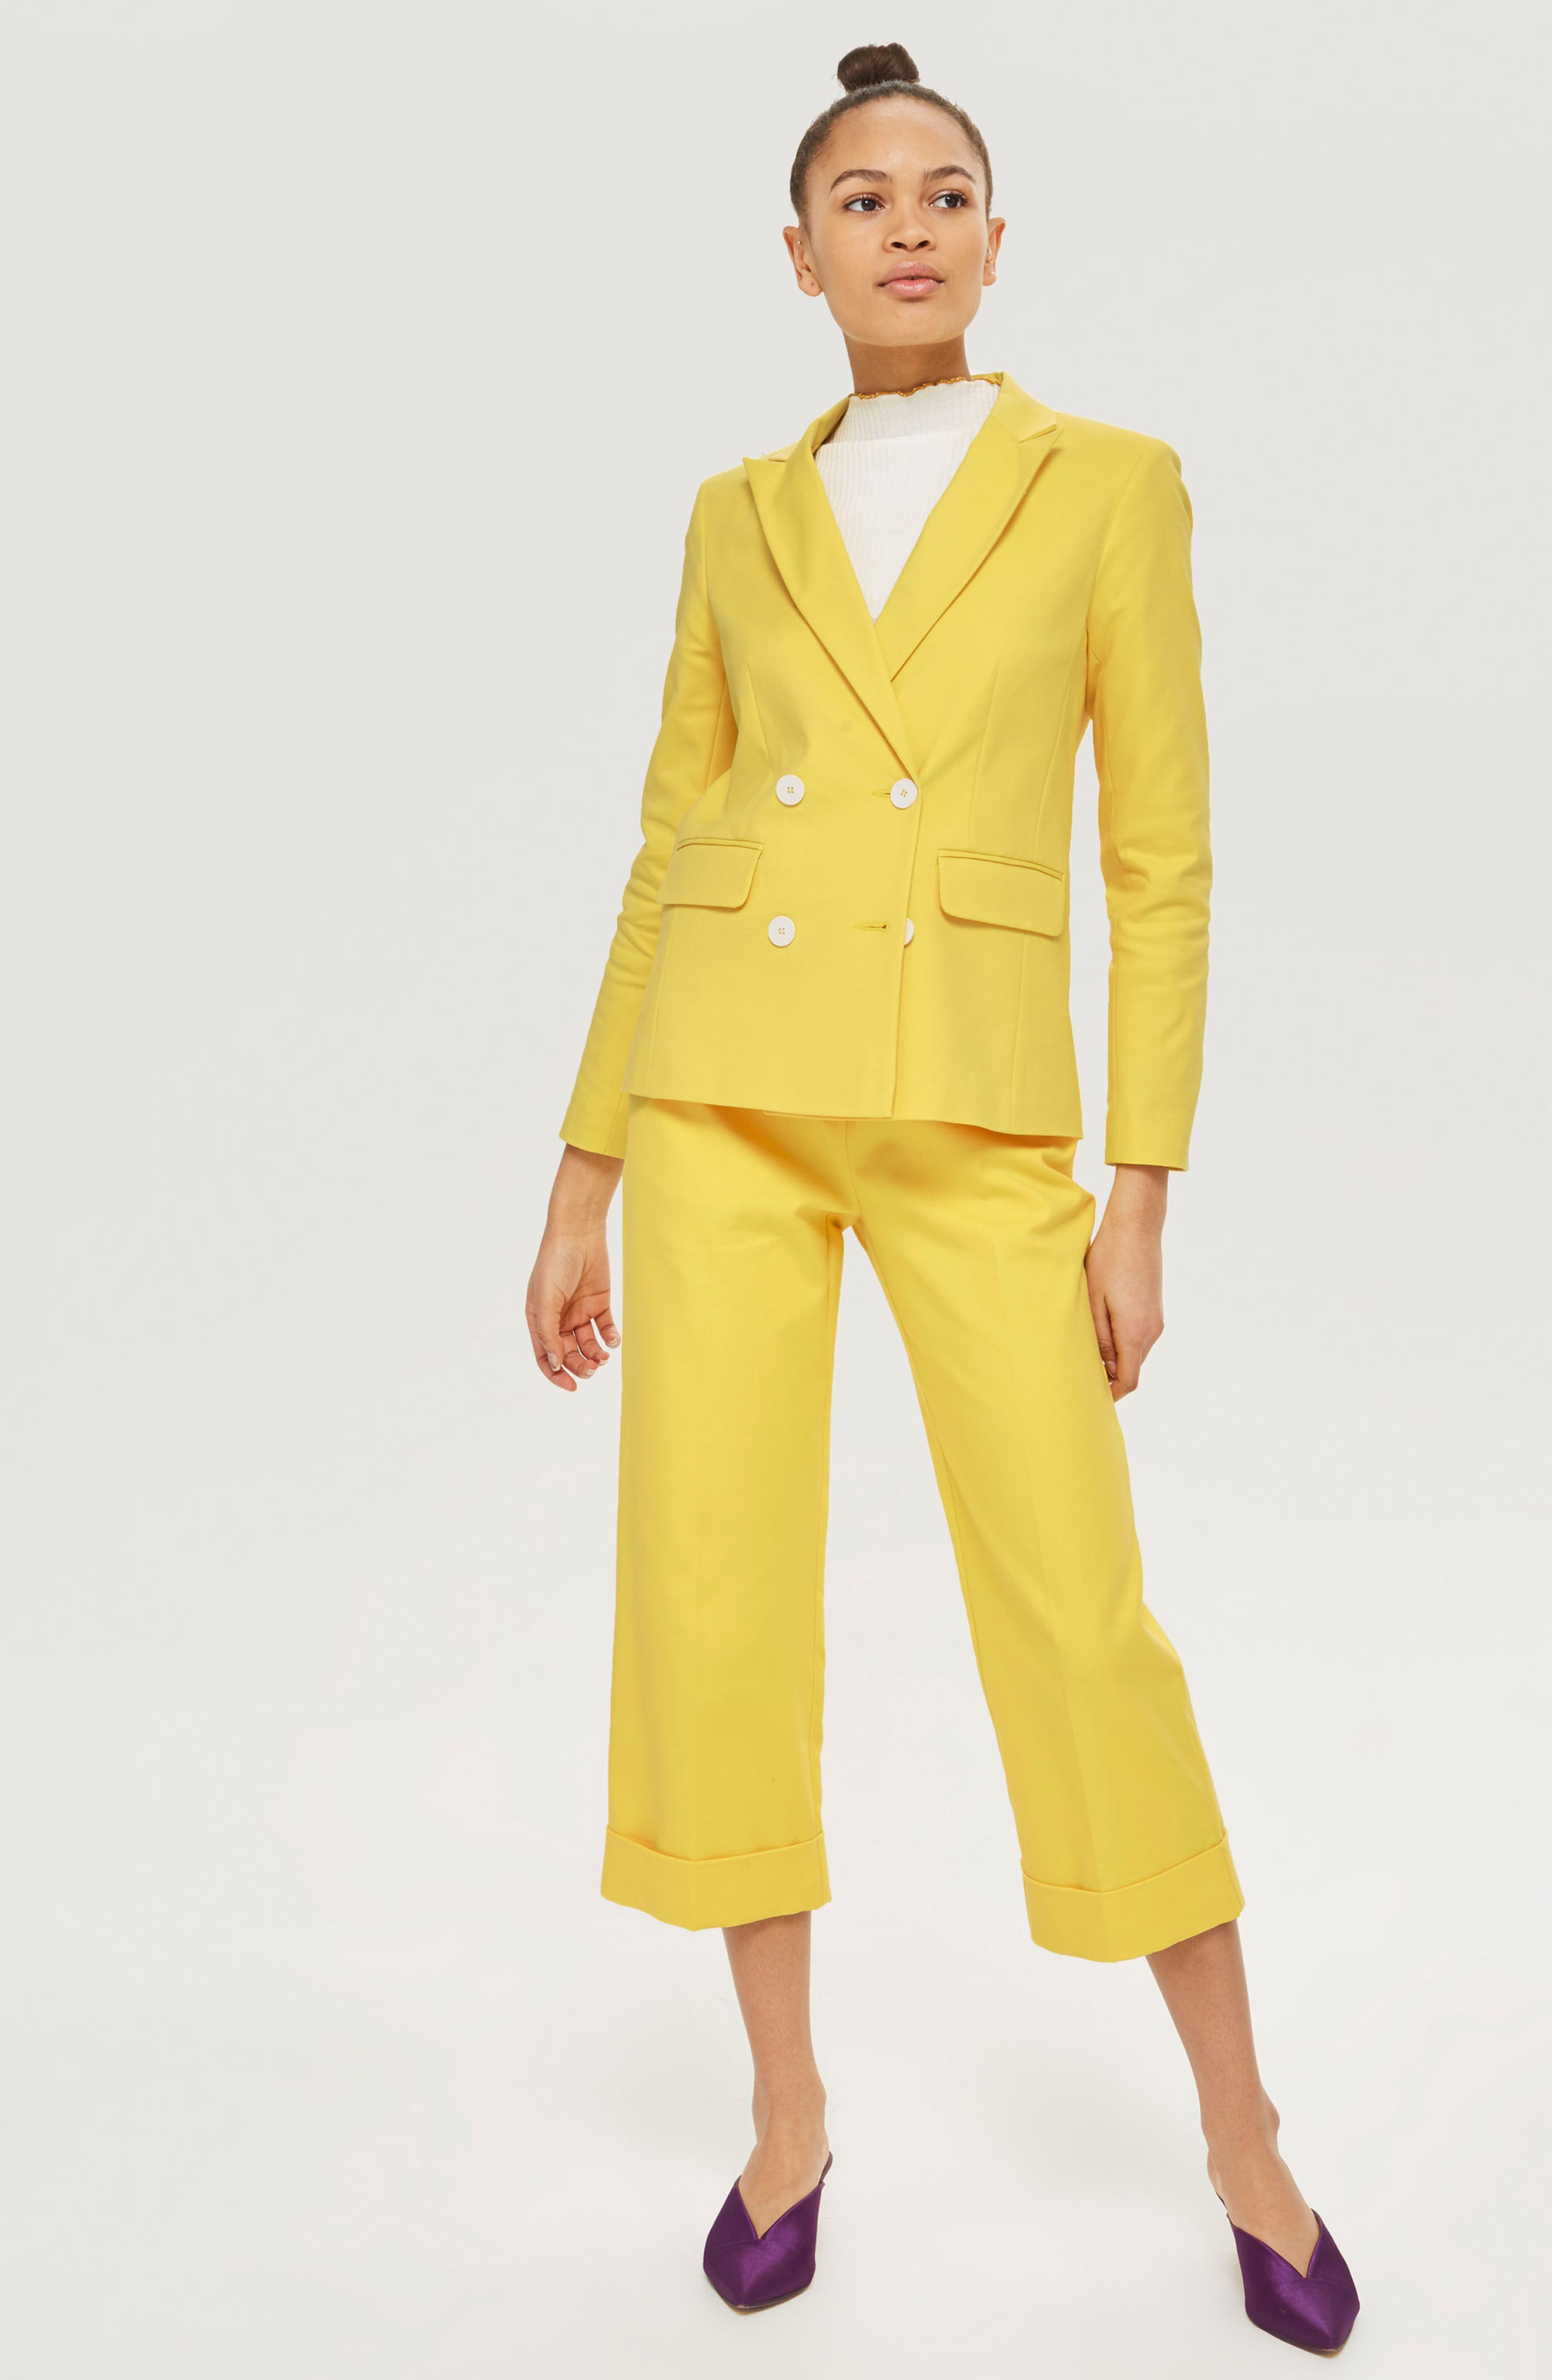 Milly Crop Suit Trousers,                             Alternate thumbnail 2, color,                             Yellow